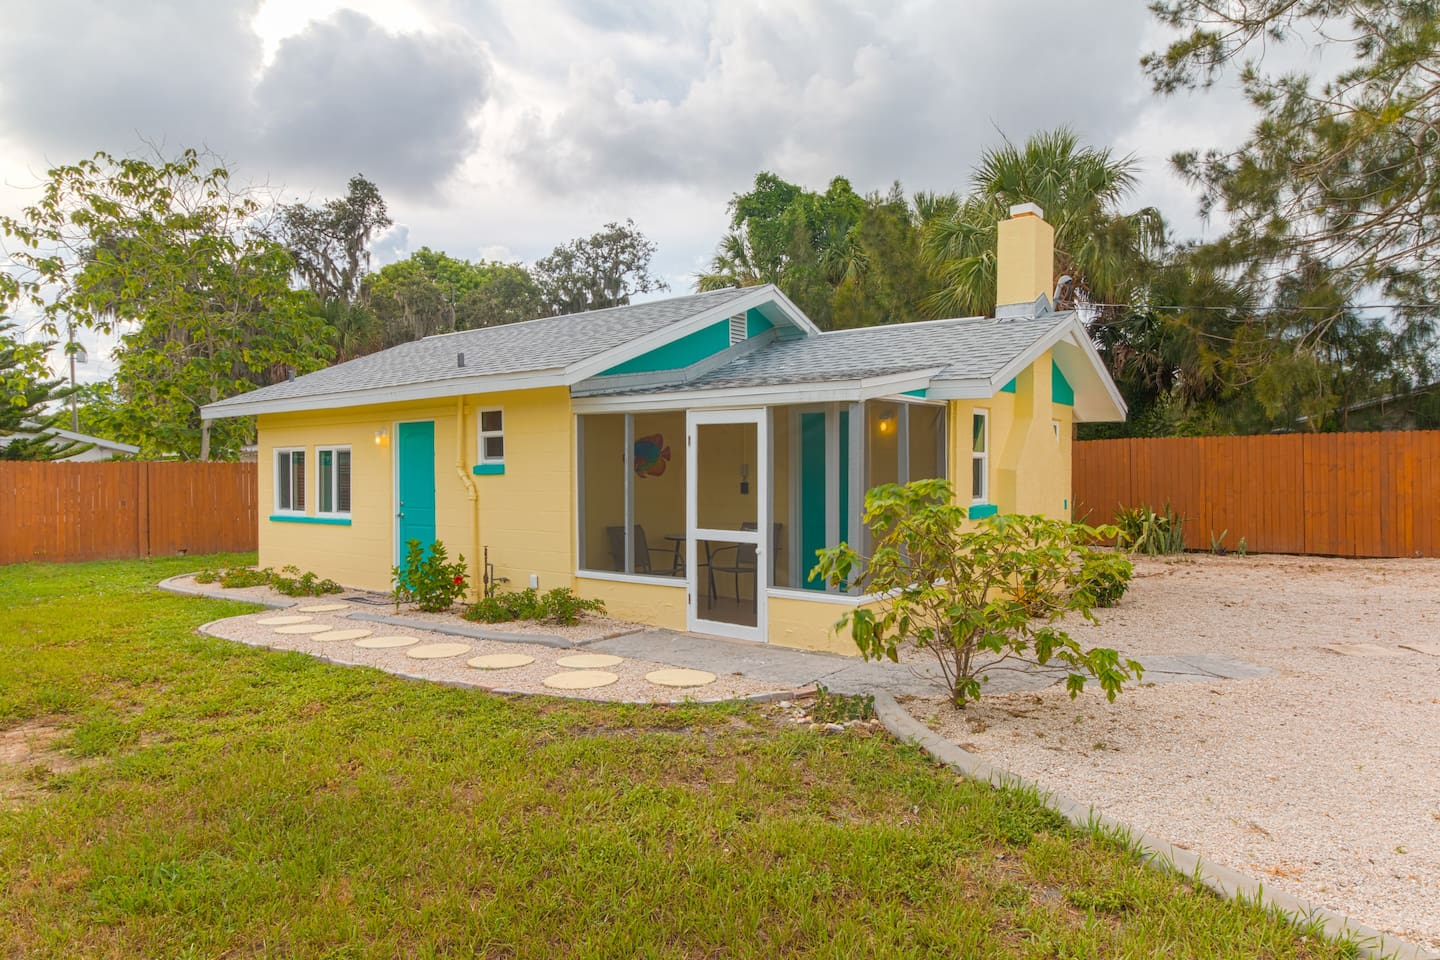 Standalone cottage is set back off the street in quiet neighborhood.